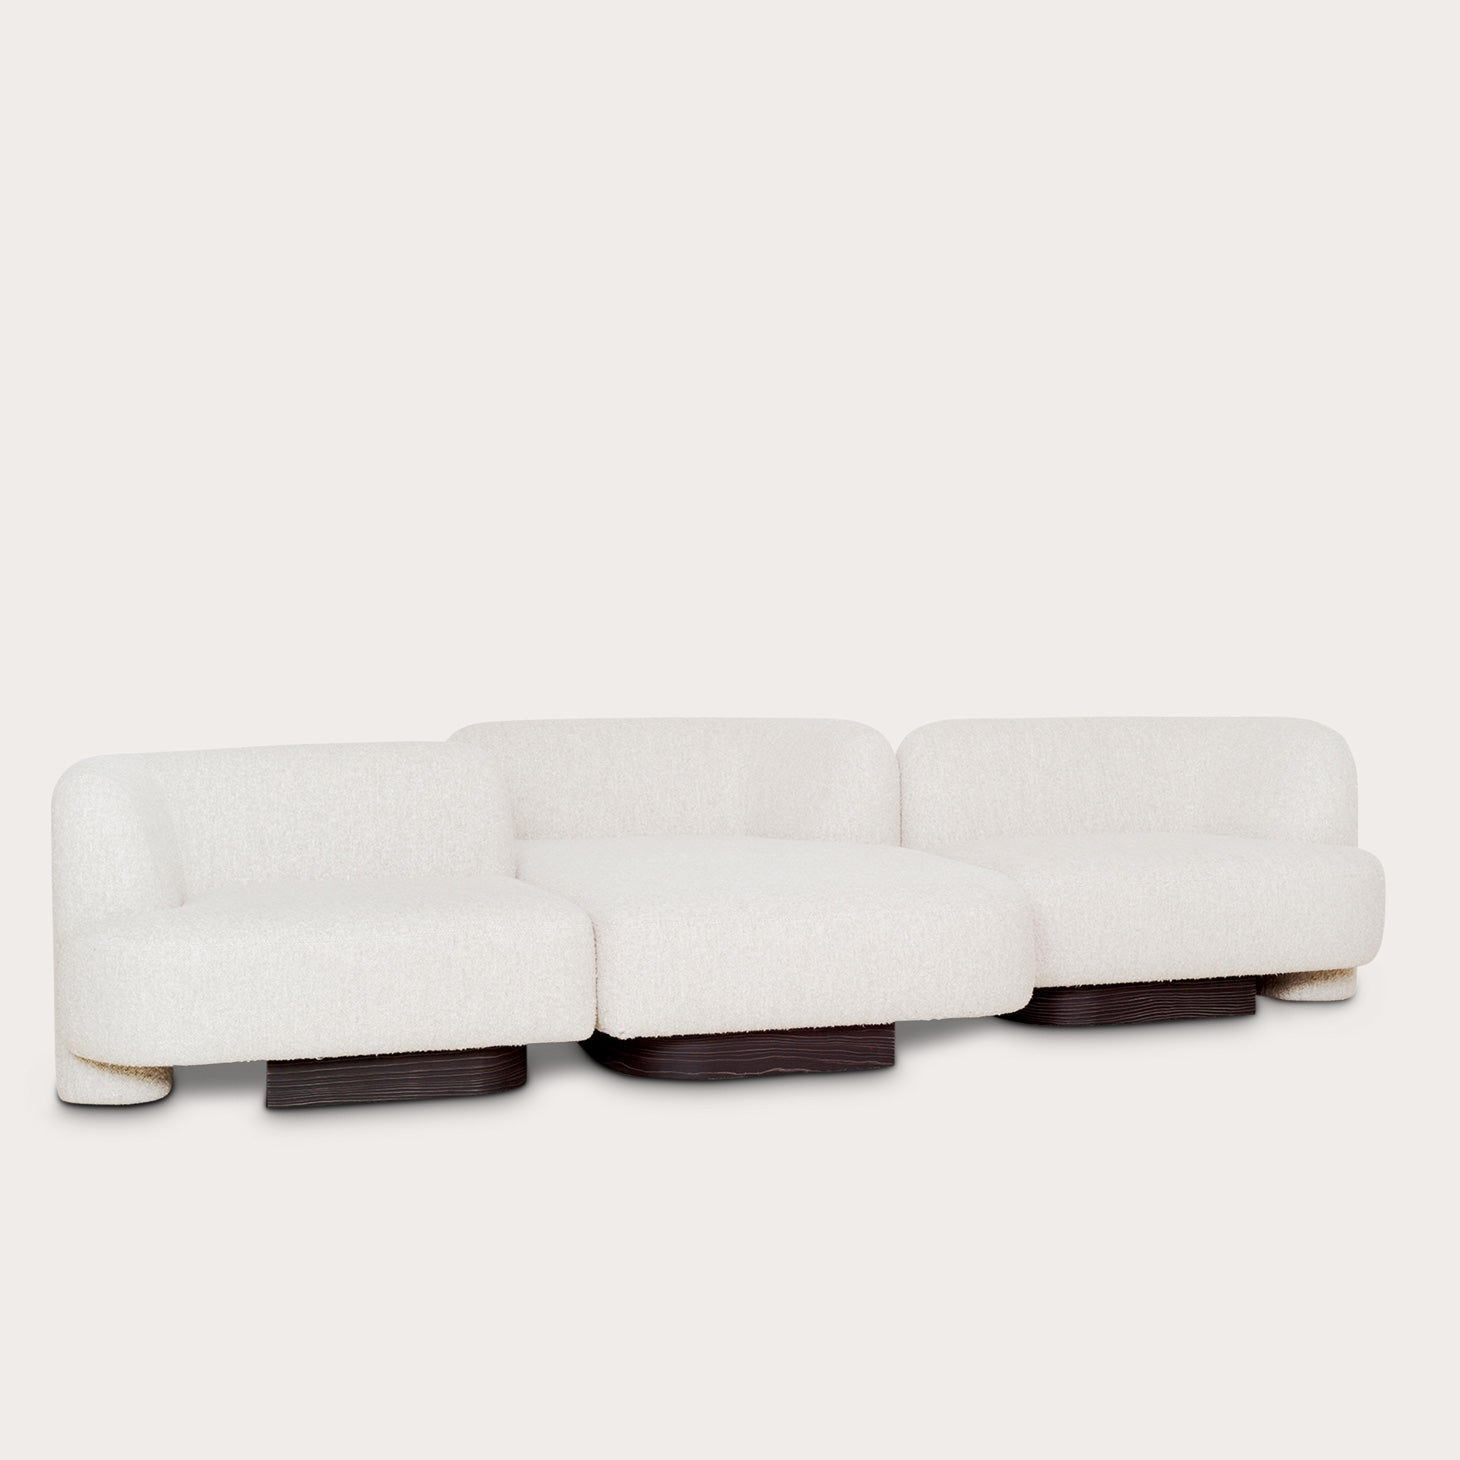 POP Sofa Program Seating Christophe Delcourt Designer Furniture Sku: 008-240-10218